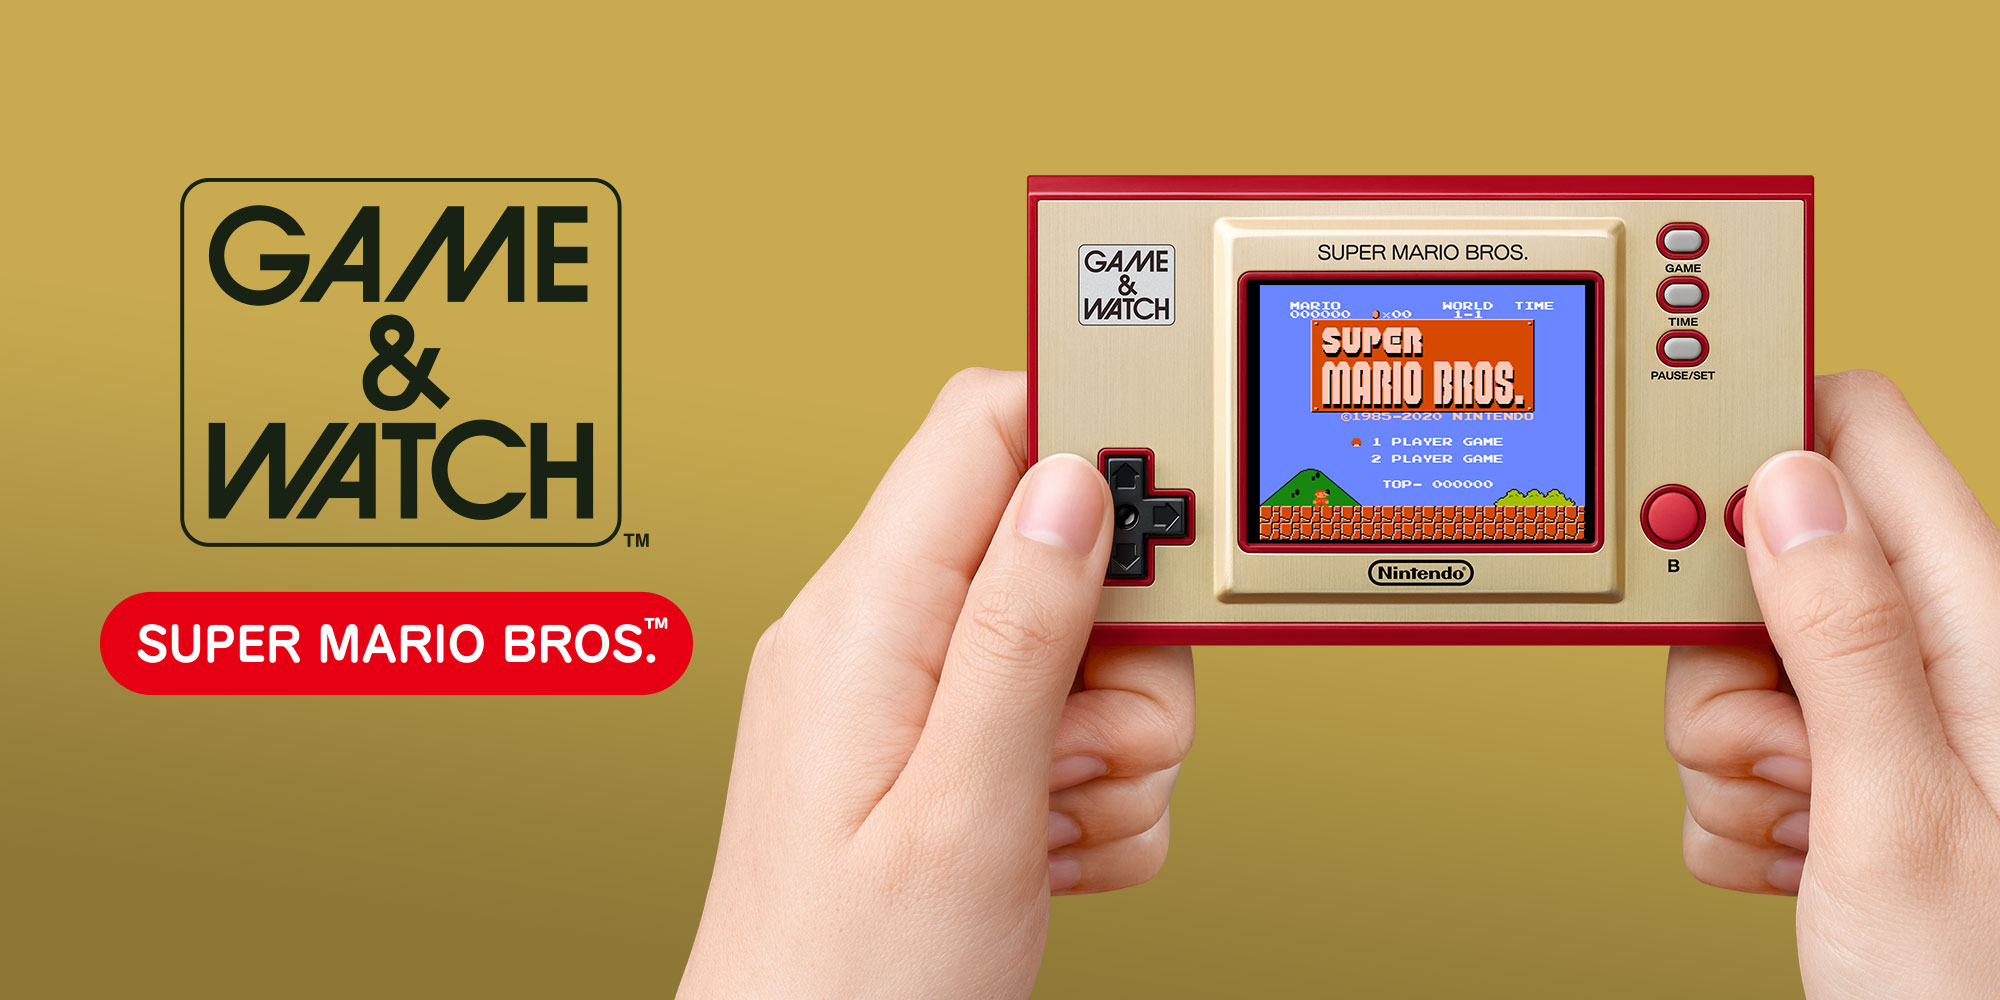 Last Retro Game You Finished And Your Thoughts - Page 14 H2x1_GameAndWatch_SuperMarioBros